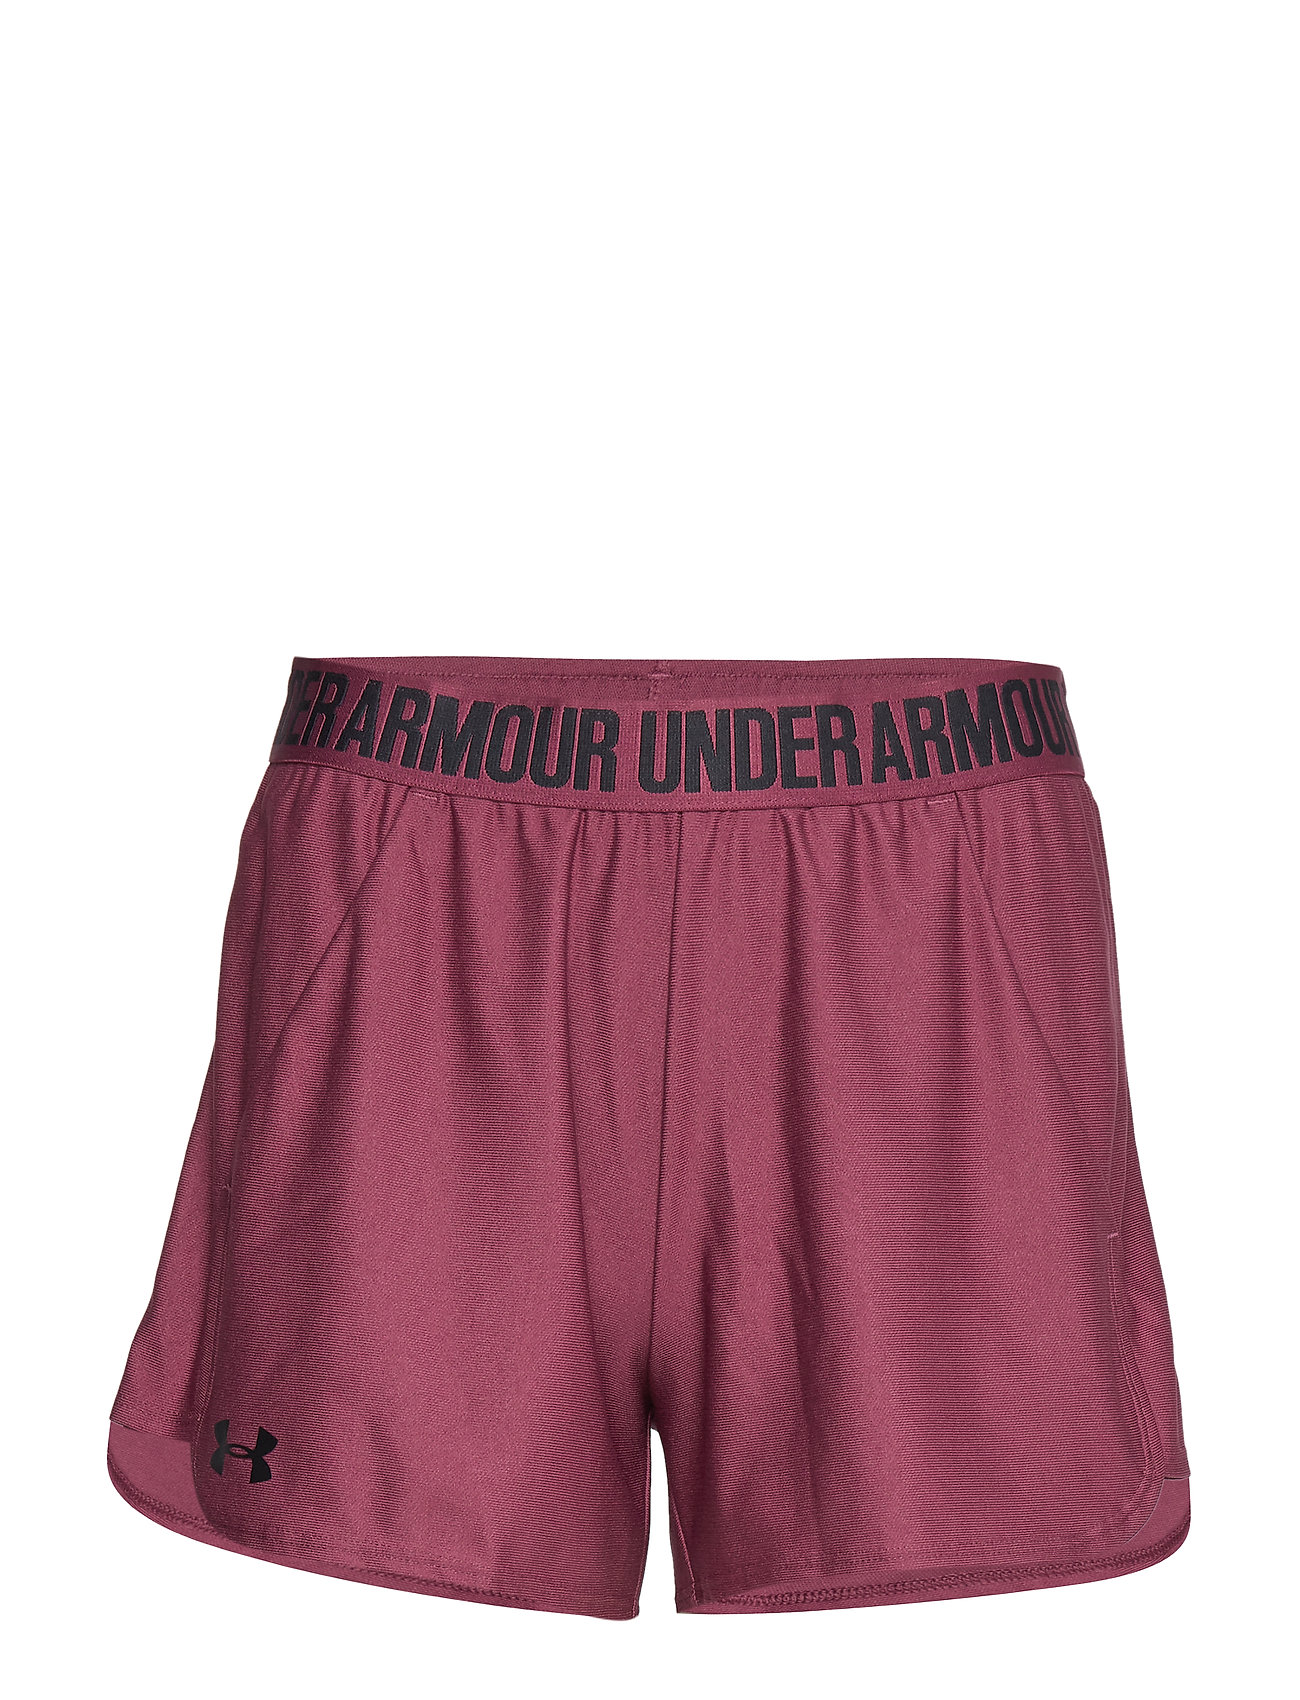 Under Armour Play Up Short 2.0 - LEVEL PURPLE